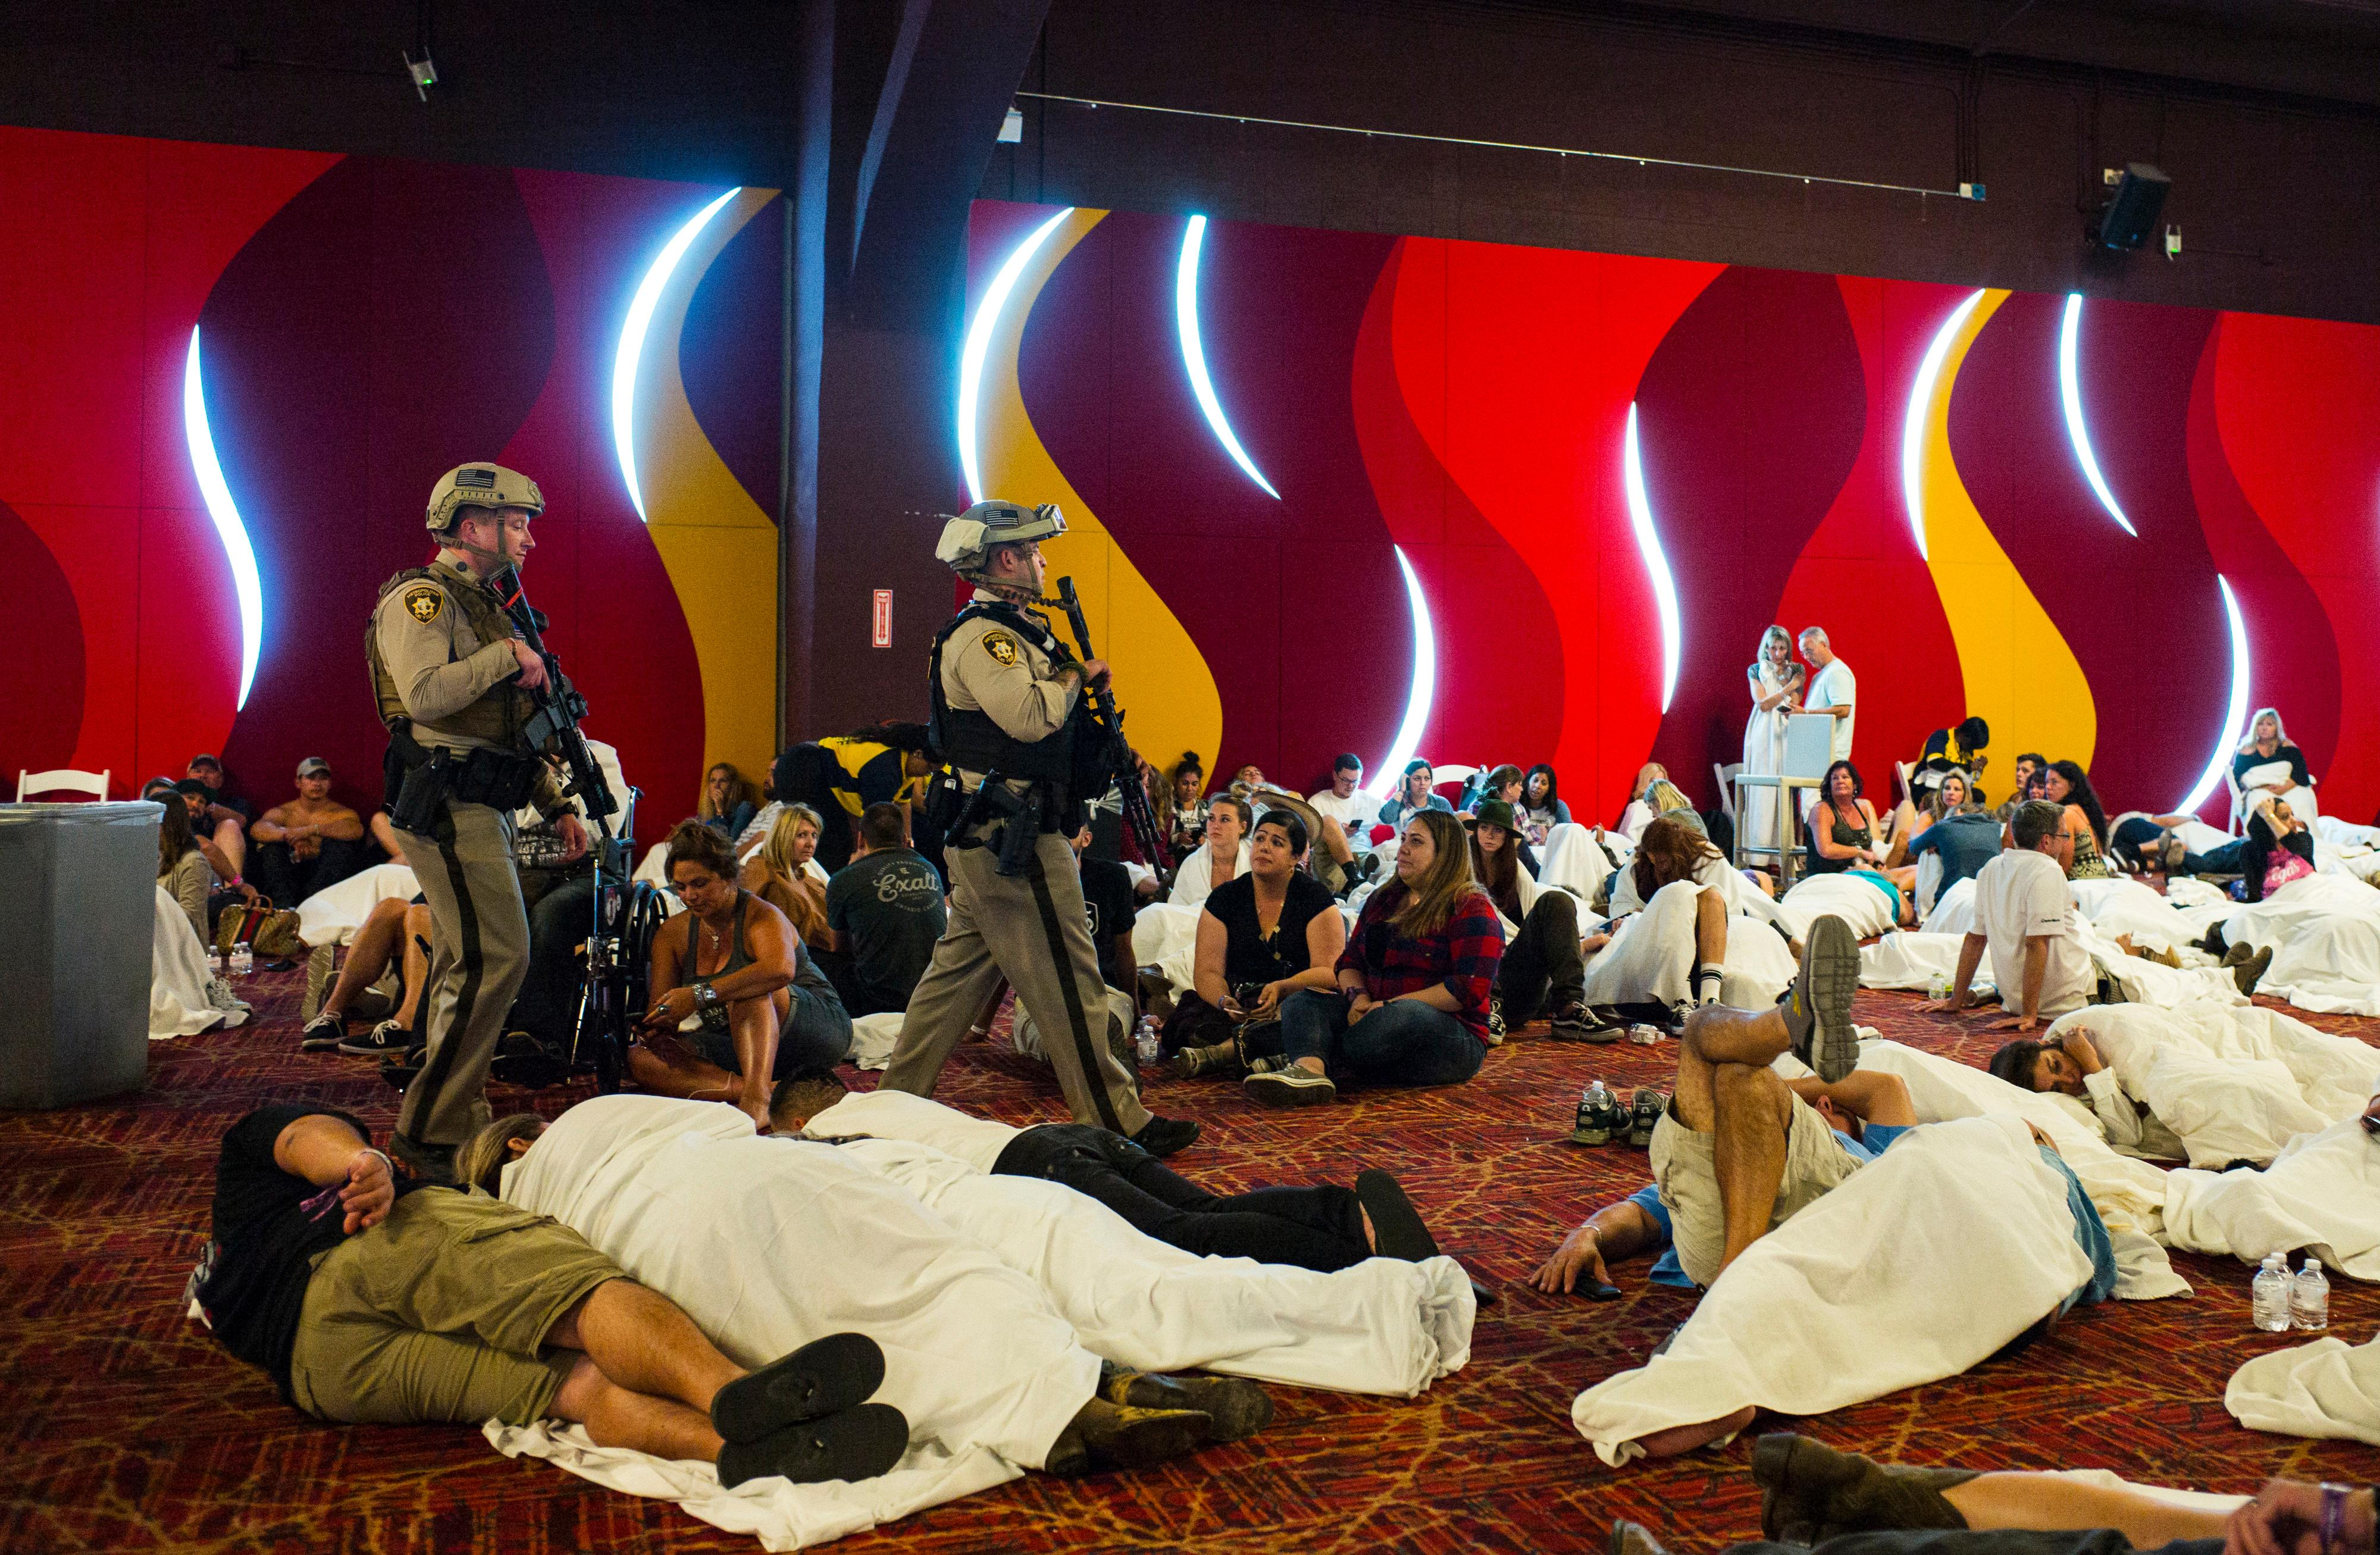 Las Vegas police sweep through a convention center area during a lockdown Monday, Oct. 2, 2017, at the Tropicana Las Vegas following an active shooter situation on the Las Vegas Strip. Multiple victims were transported to hospitals after a deadly shooting late Sunday at a music festival on the Las Vegas Strip. (Chase Stevens/Las Vegas Review-Journal via AP)